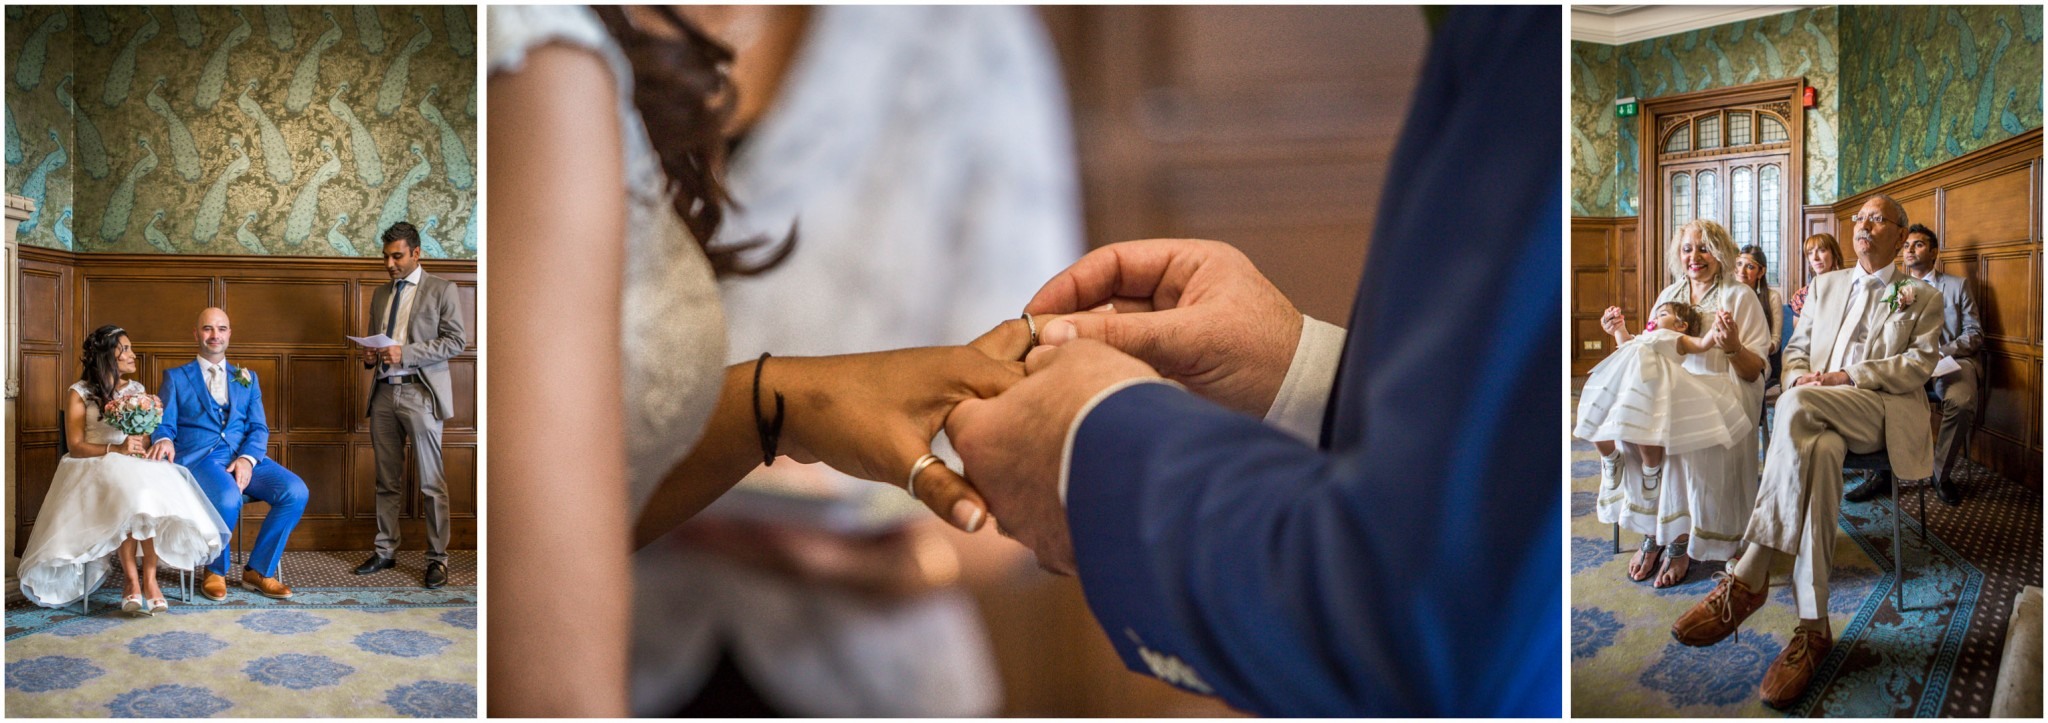 winchester-basing-room-wedding-photography-017